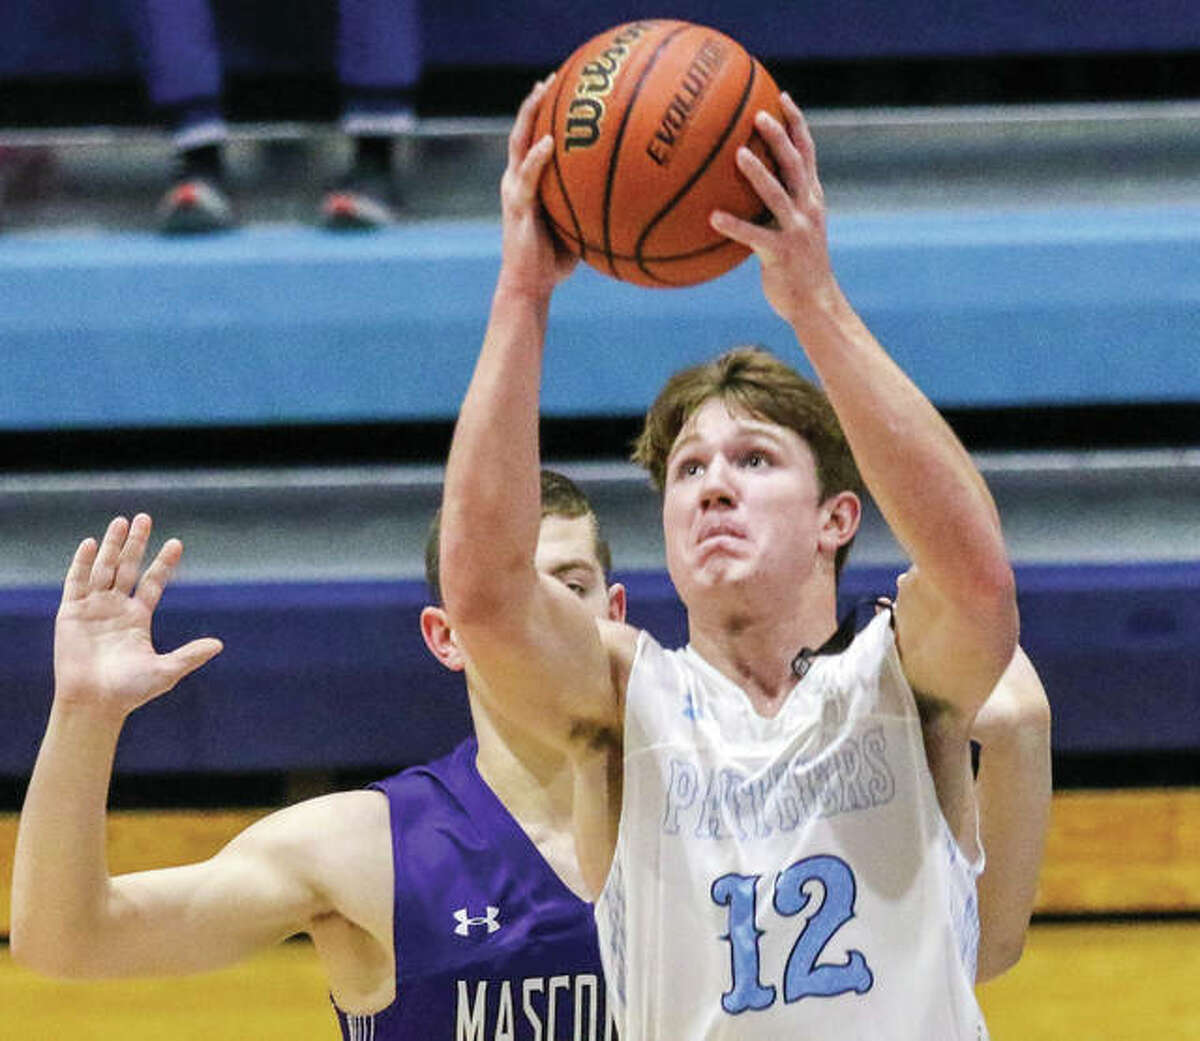 Jersey's Blake Wittman goes up to score in a Mississippi Valley Conference game against Mascoutah on Tuesday night at Havens Gym in Jerseyville. The Indians defeated the Panthers 64-56 to send Jersey to holiday tournament play next week in Pinckneyville.